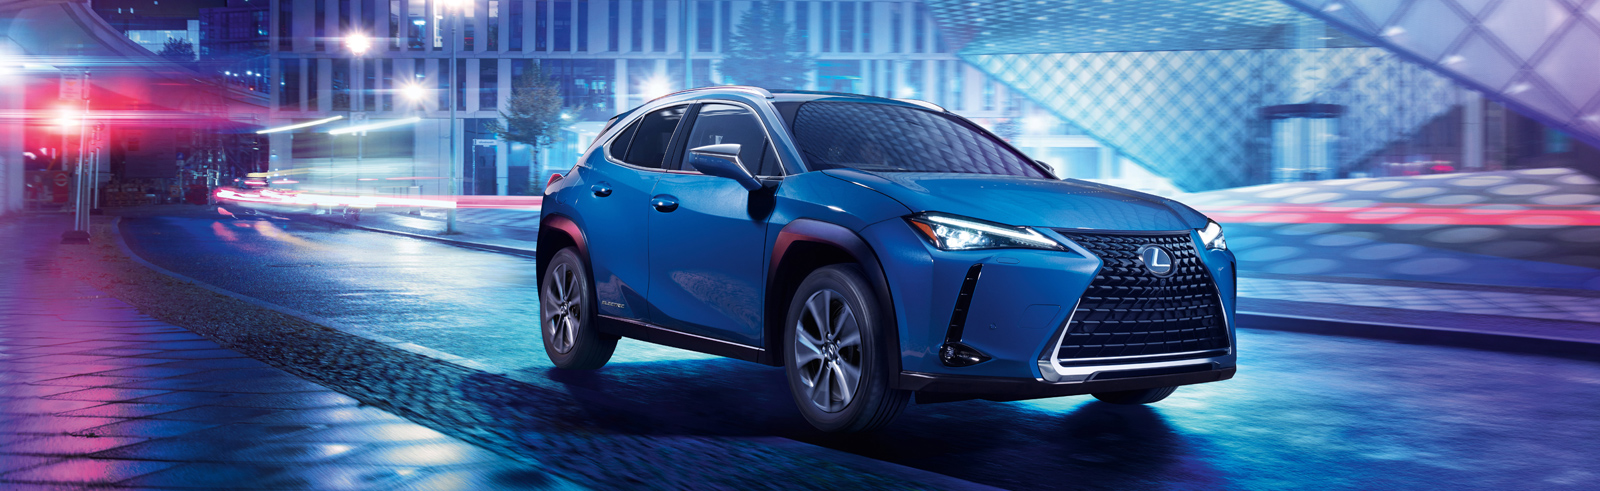 Toyota premiers in China the first Lexus EV - the Lexus UX 300e